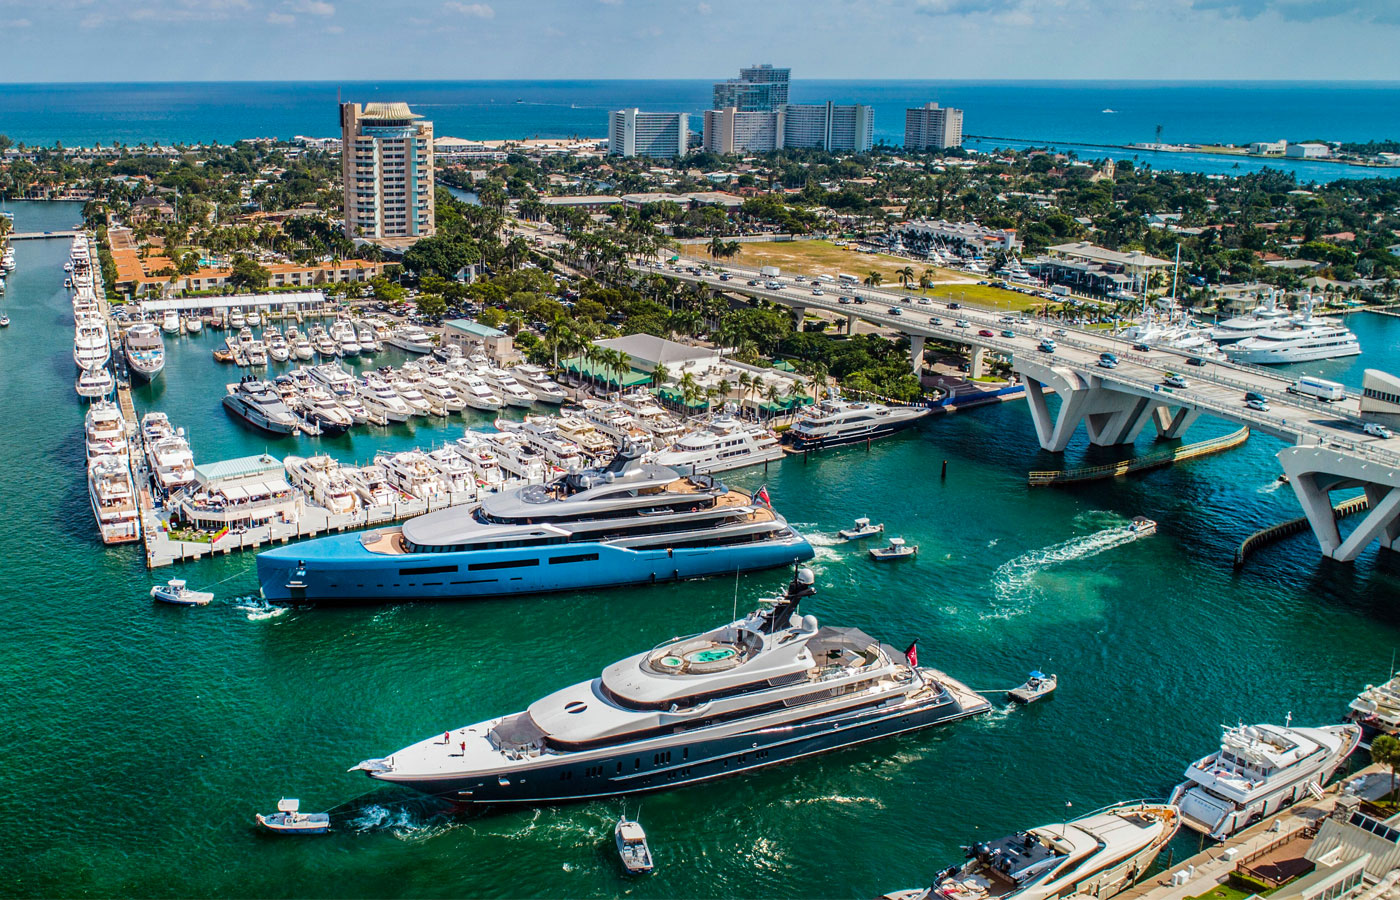 flibs 2019 FLIBS 2019: Find Out Here The Most Luxurious Pieces At Popular Booths flibs 2019 luxurious pieces popular booths 1 1